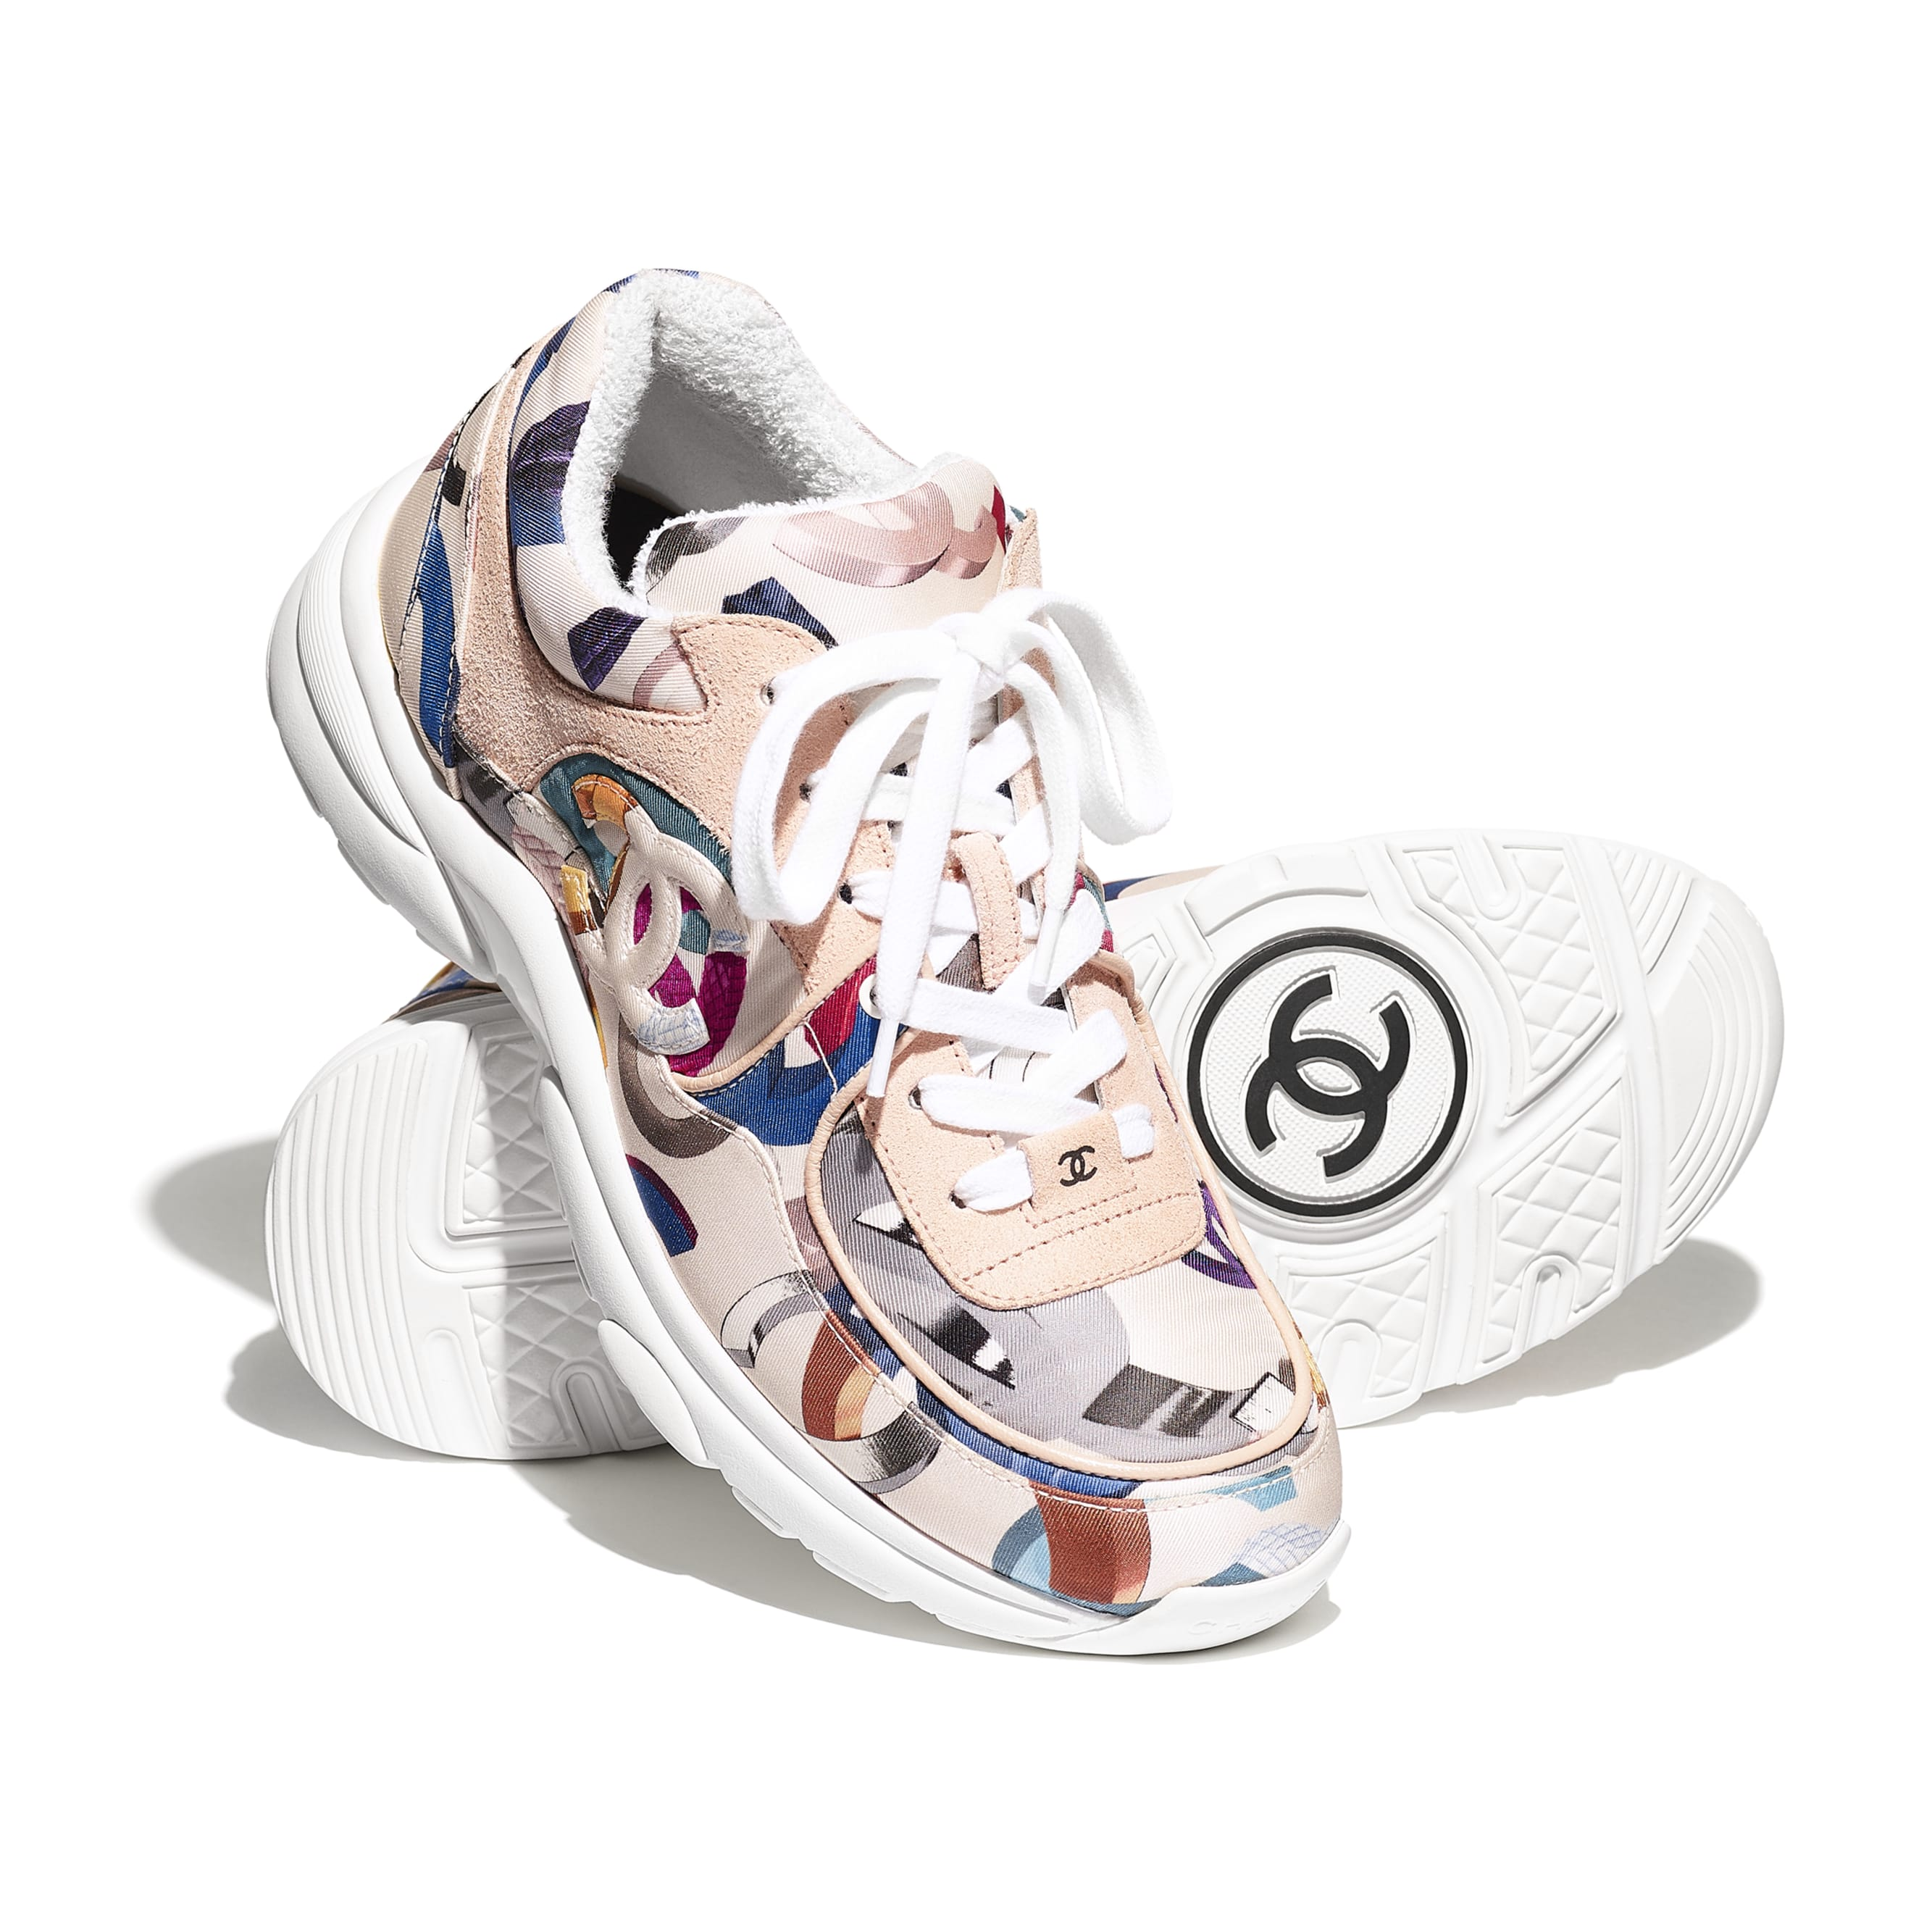 Sneakers - White & Multicolor - Printed Fabric & Suede Calfskin - CHANEL - Extra view - see standard sized version